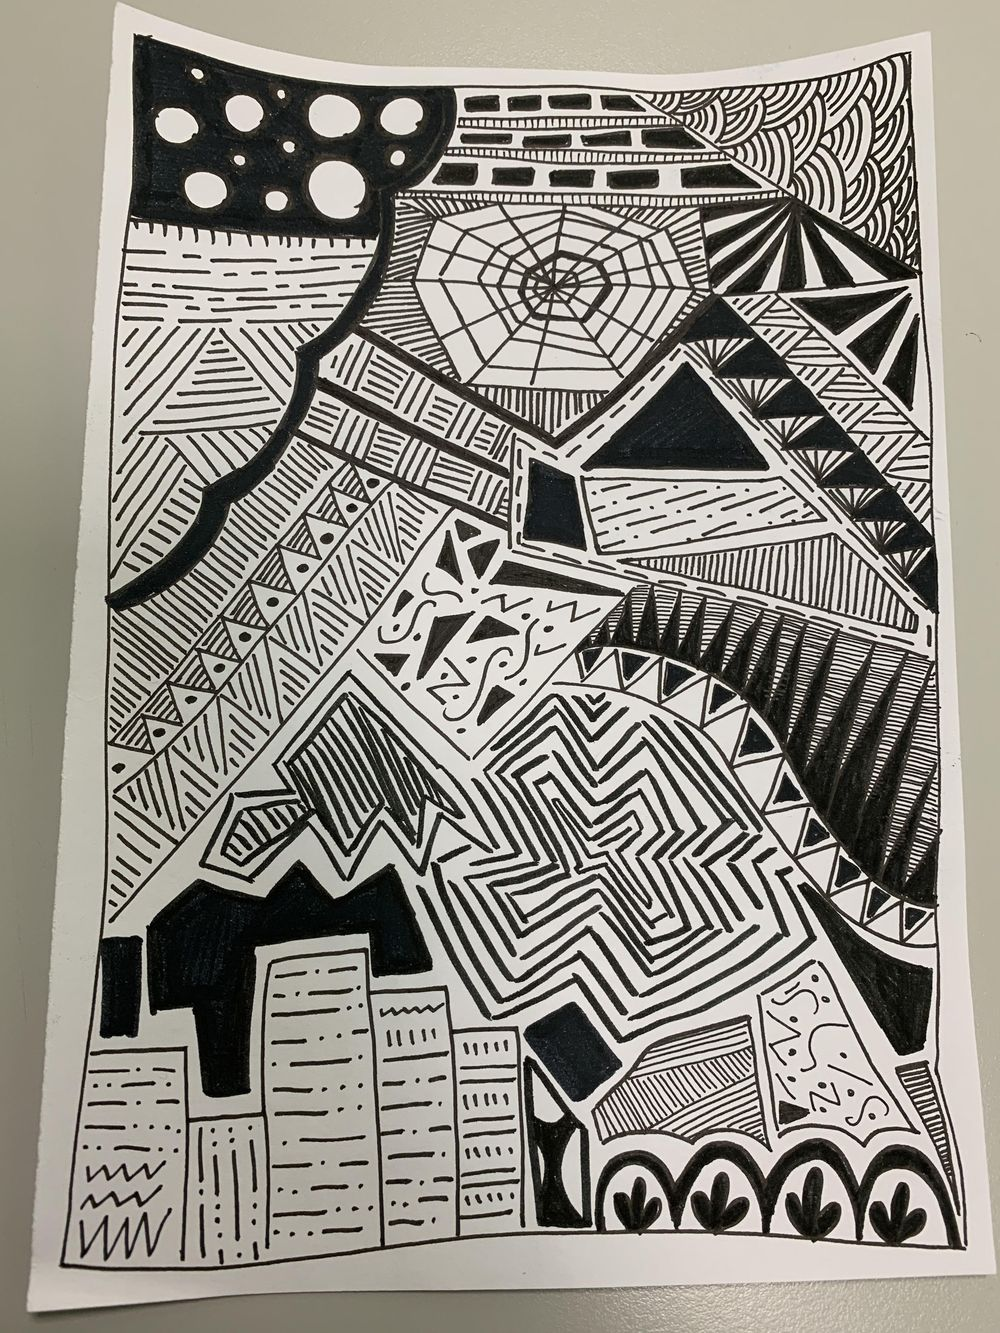 Doodles! - image 1 - student project